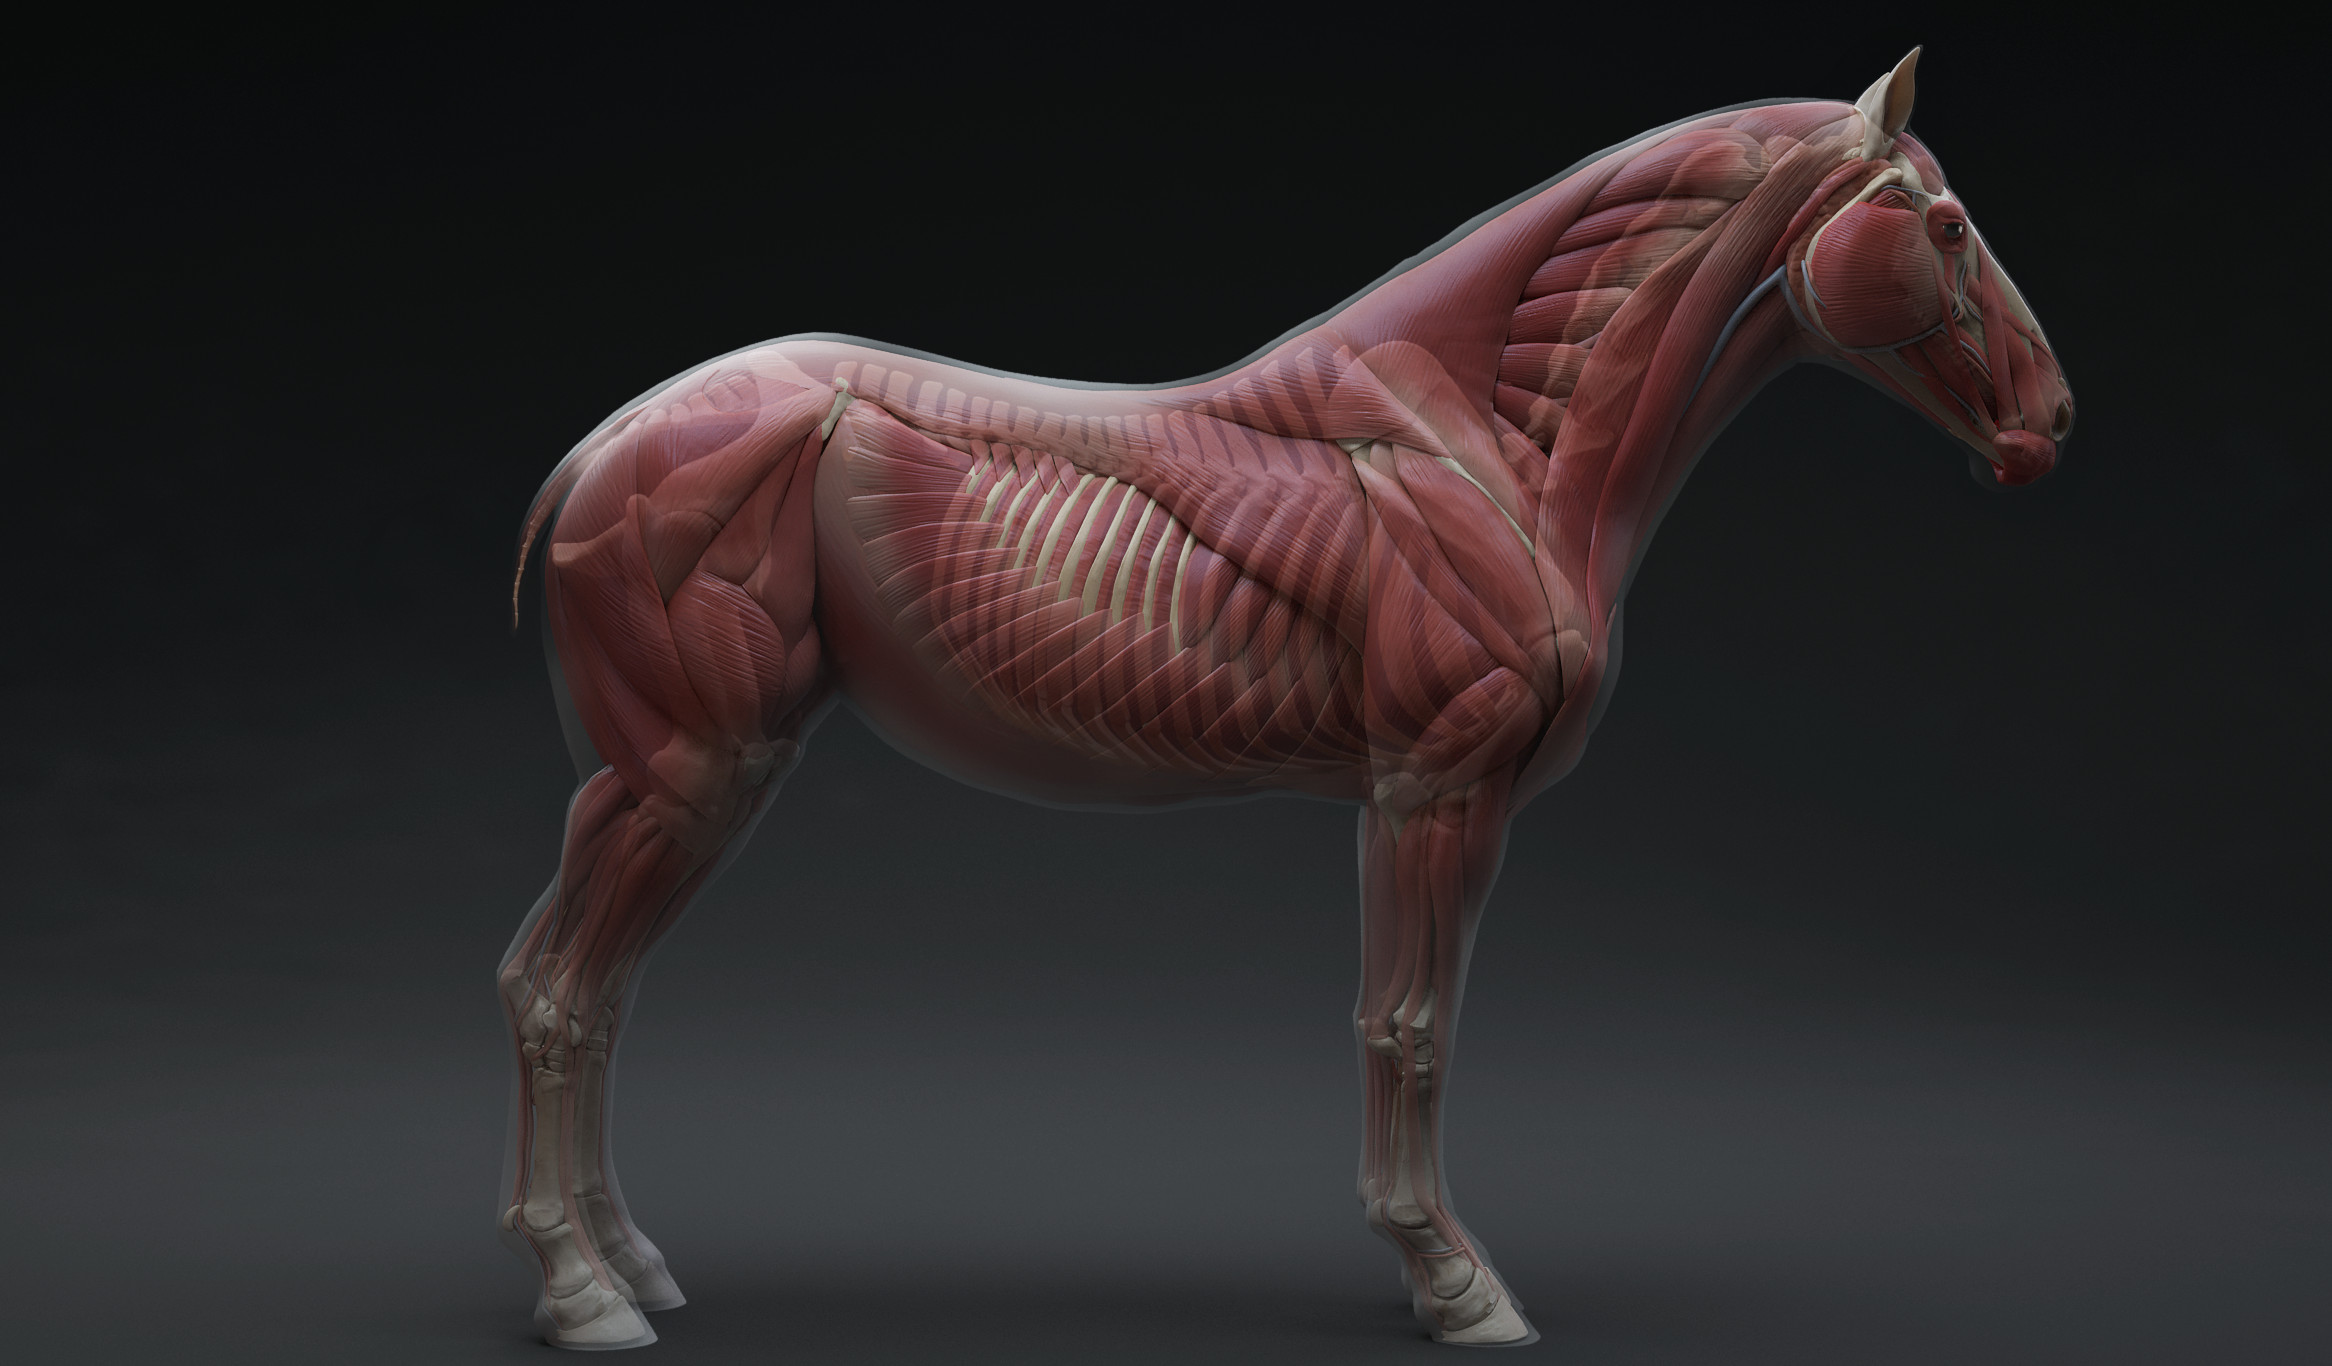 This model is available at -33% at launch! Grab it while you can :) 